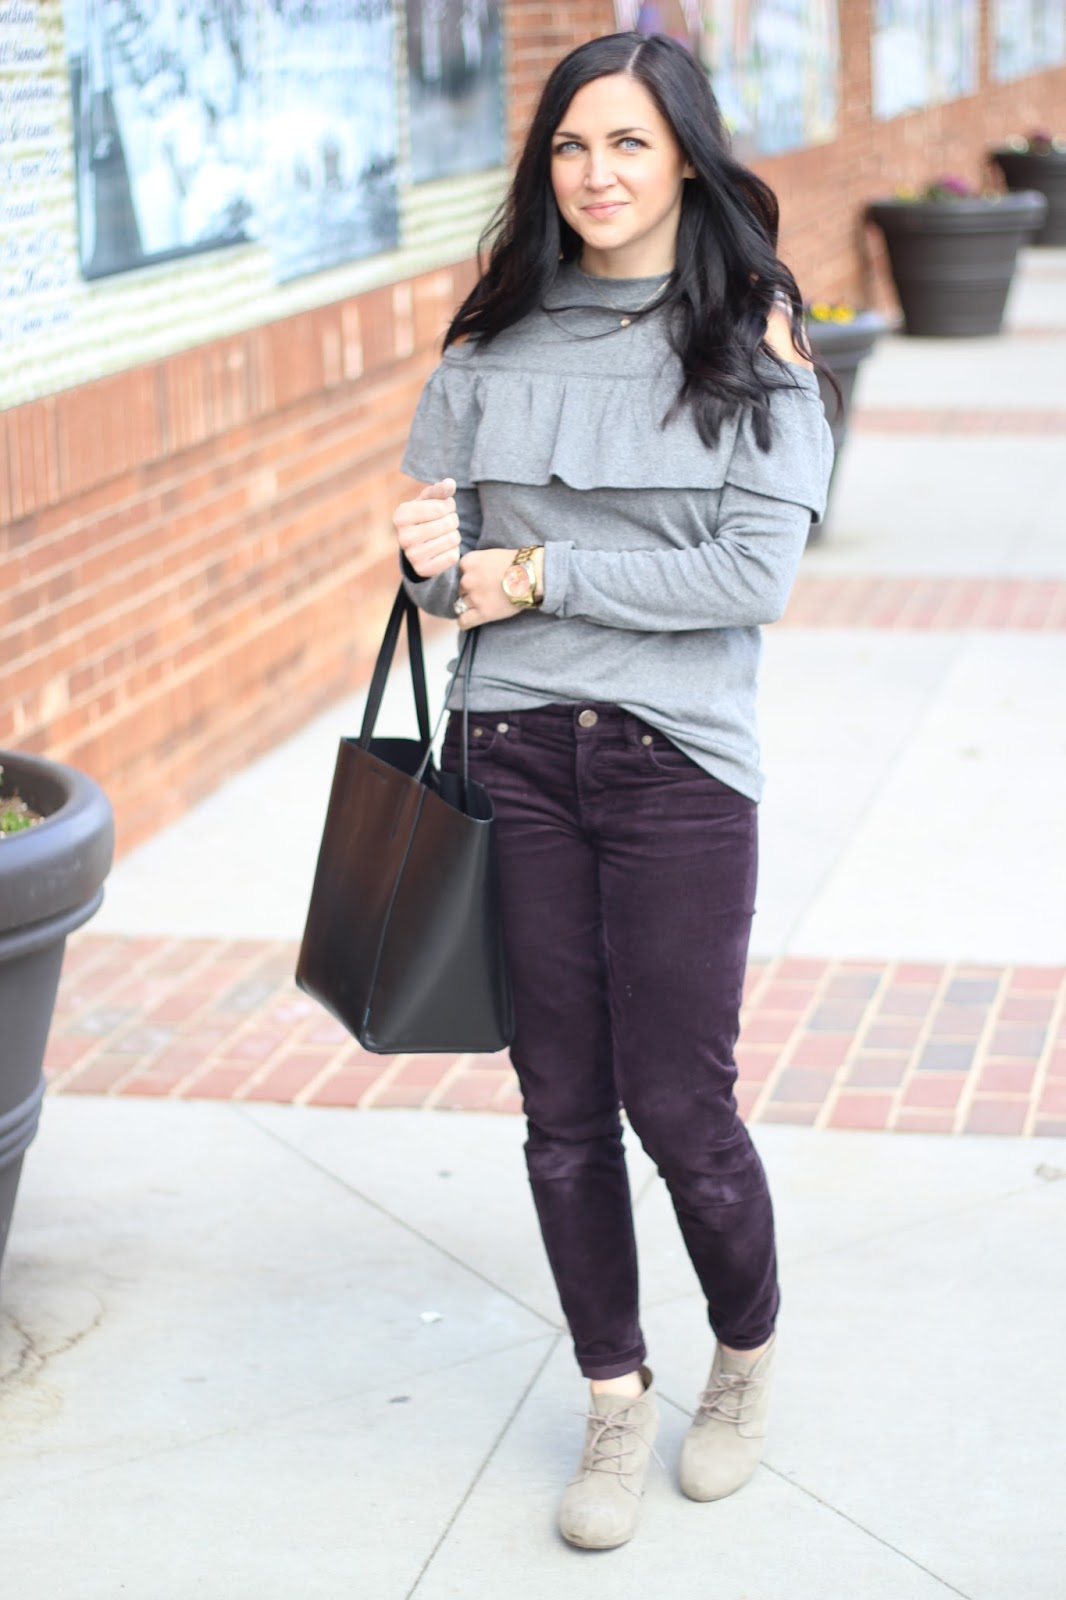 Cold Shoulder Sweatshirt with corduroy pants